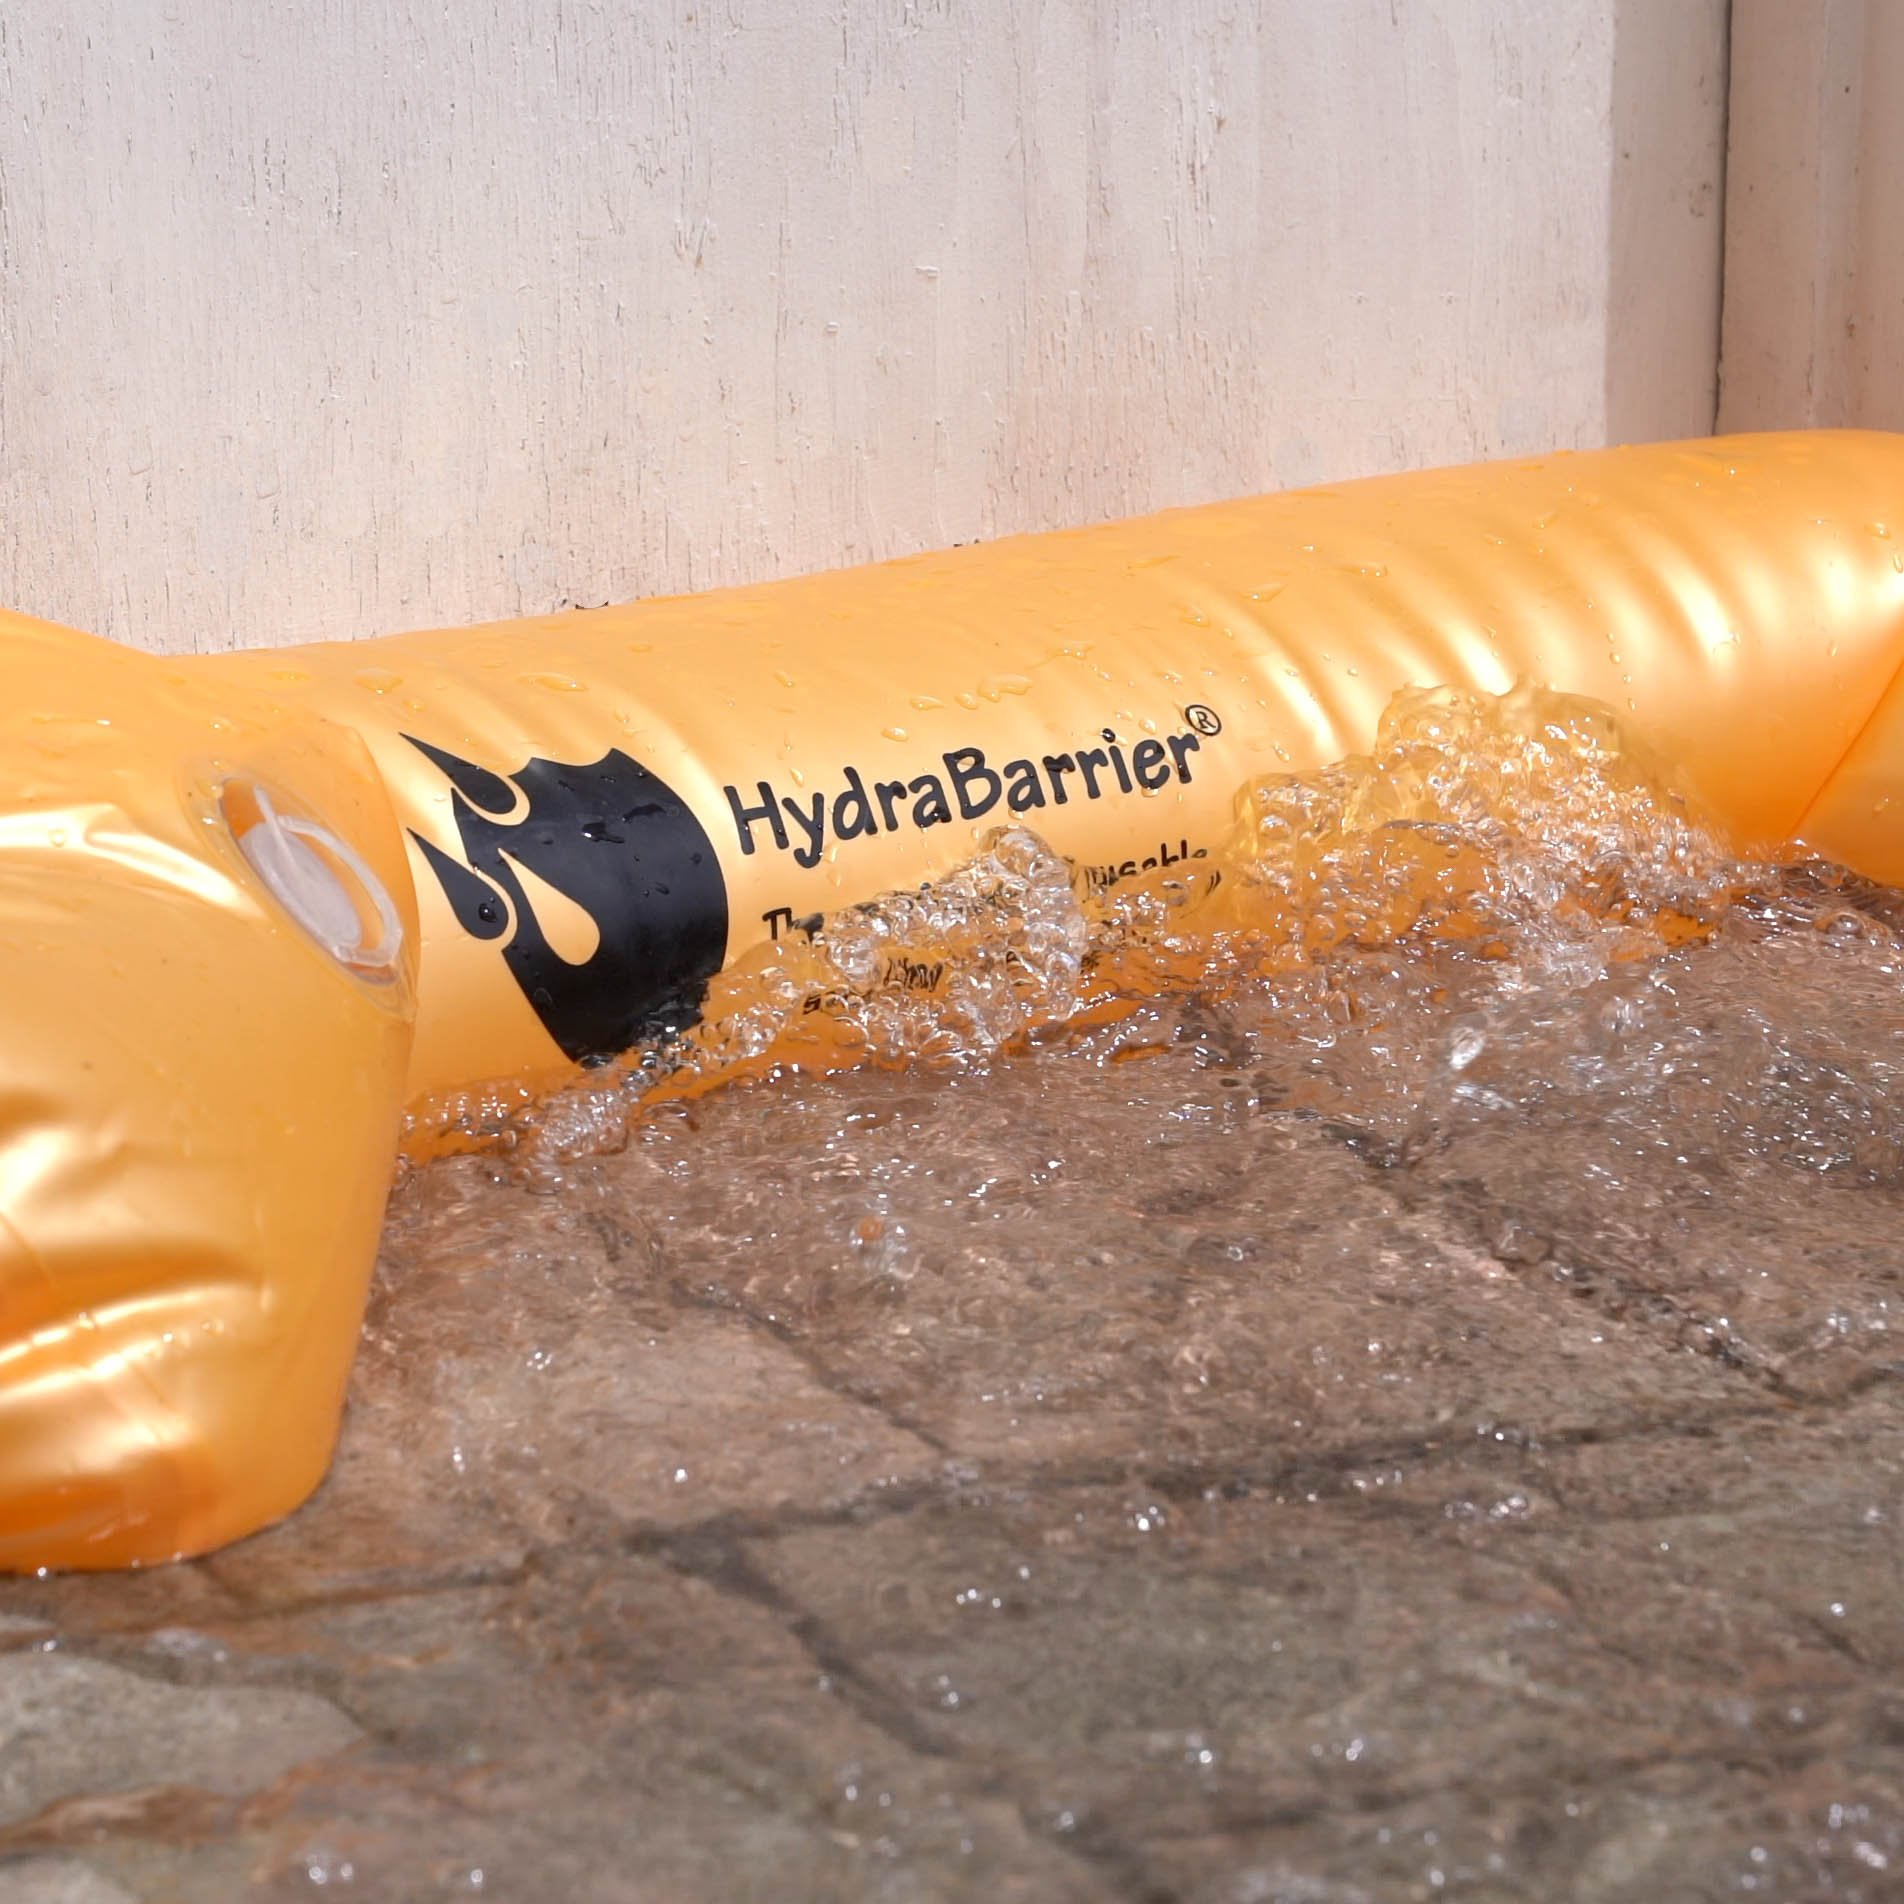 Best Sandbag Alternative - Hydrabarrier Standard 6 Foot Length 4 Inch Height. - Water Diversion Tubes That Are the Lightweight, Re-usable, and Eco-friendly (Single Unit)